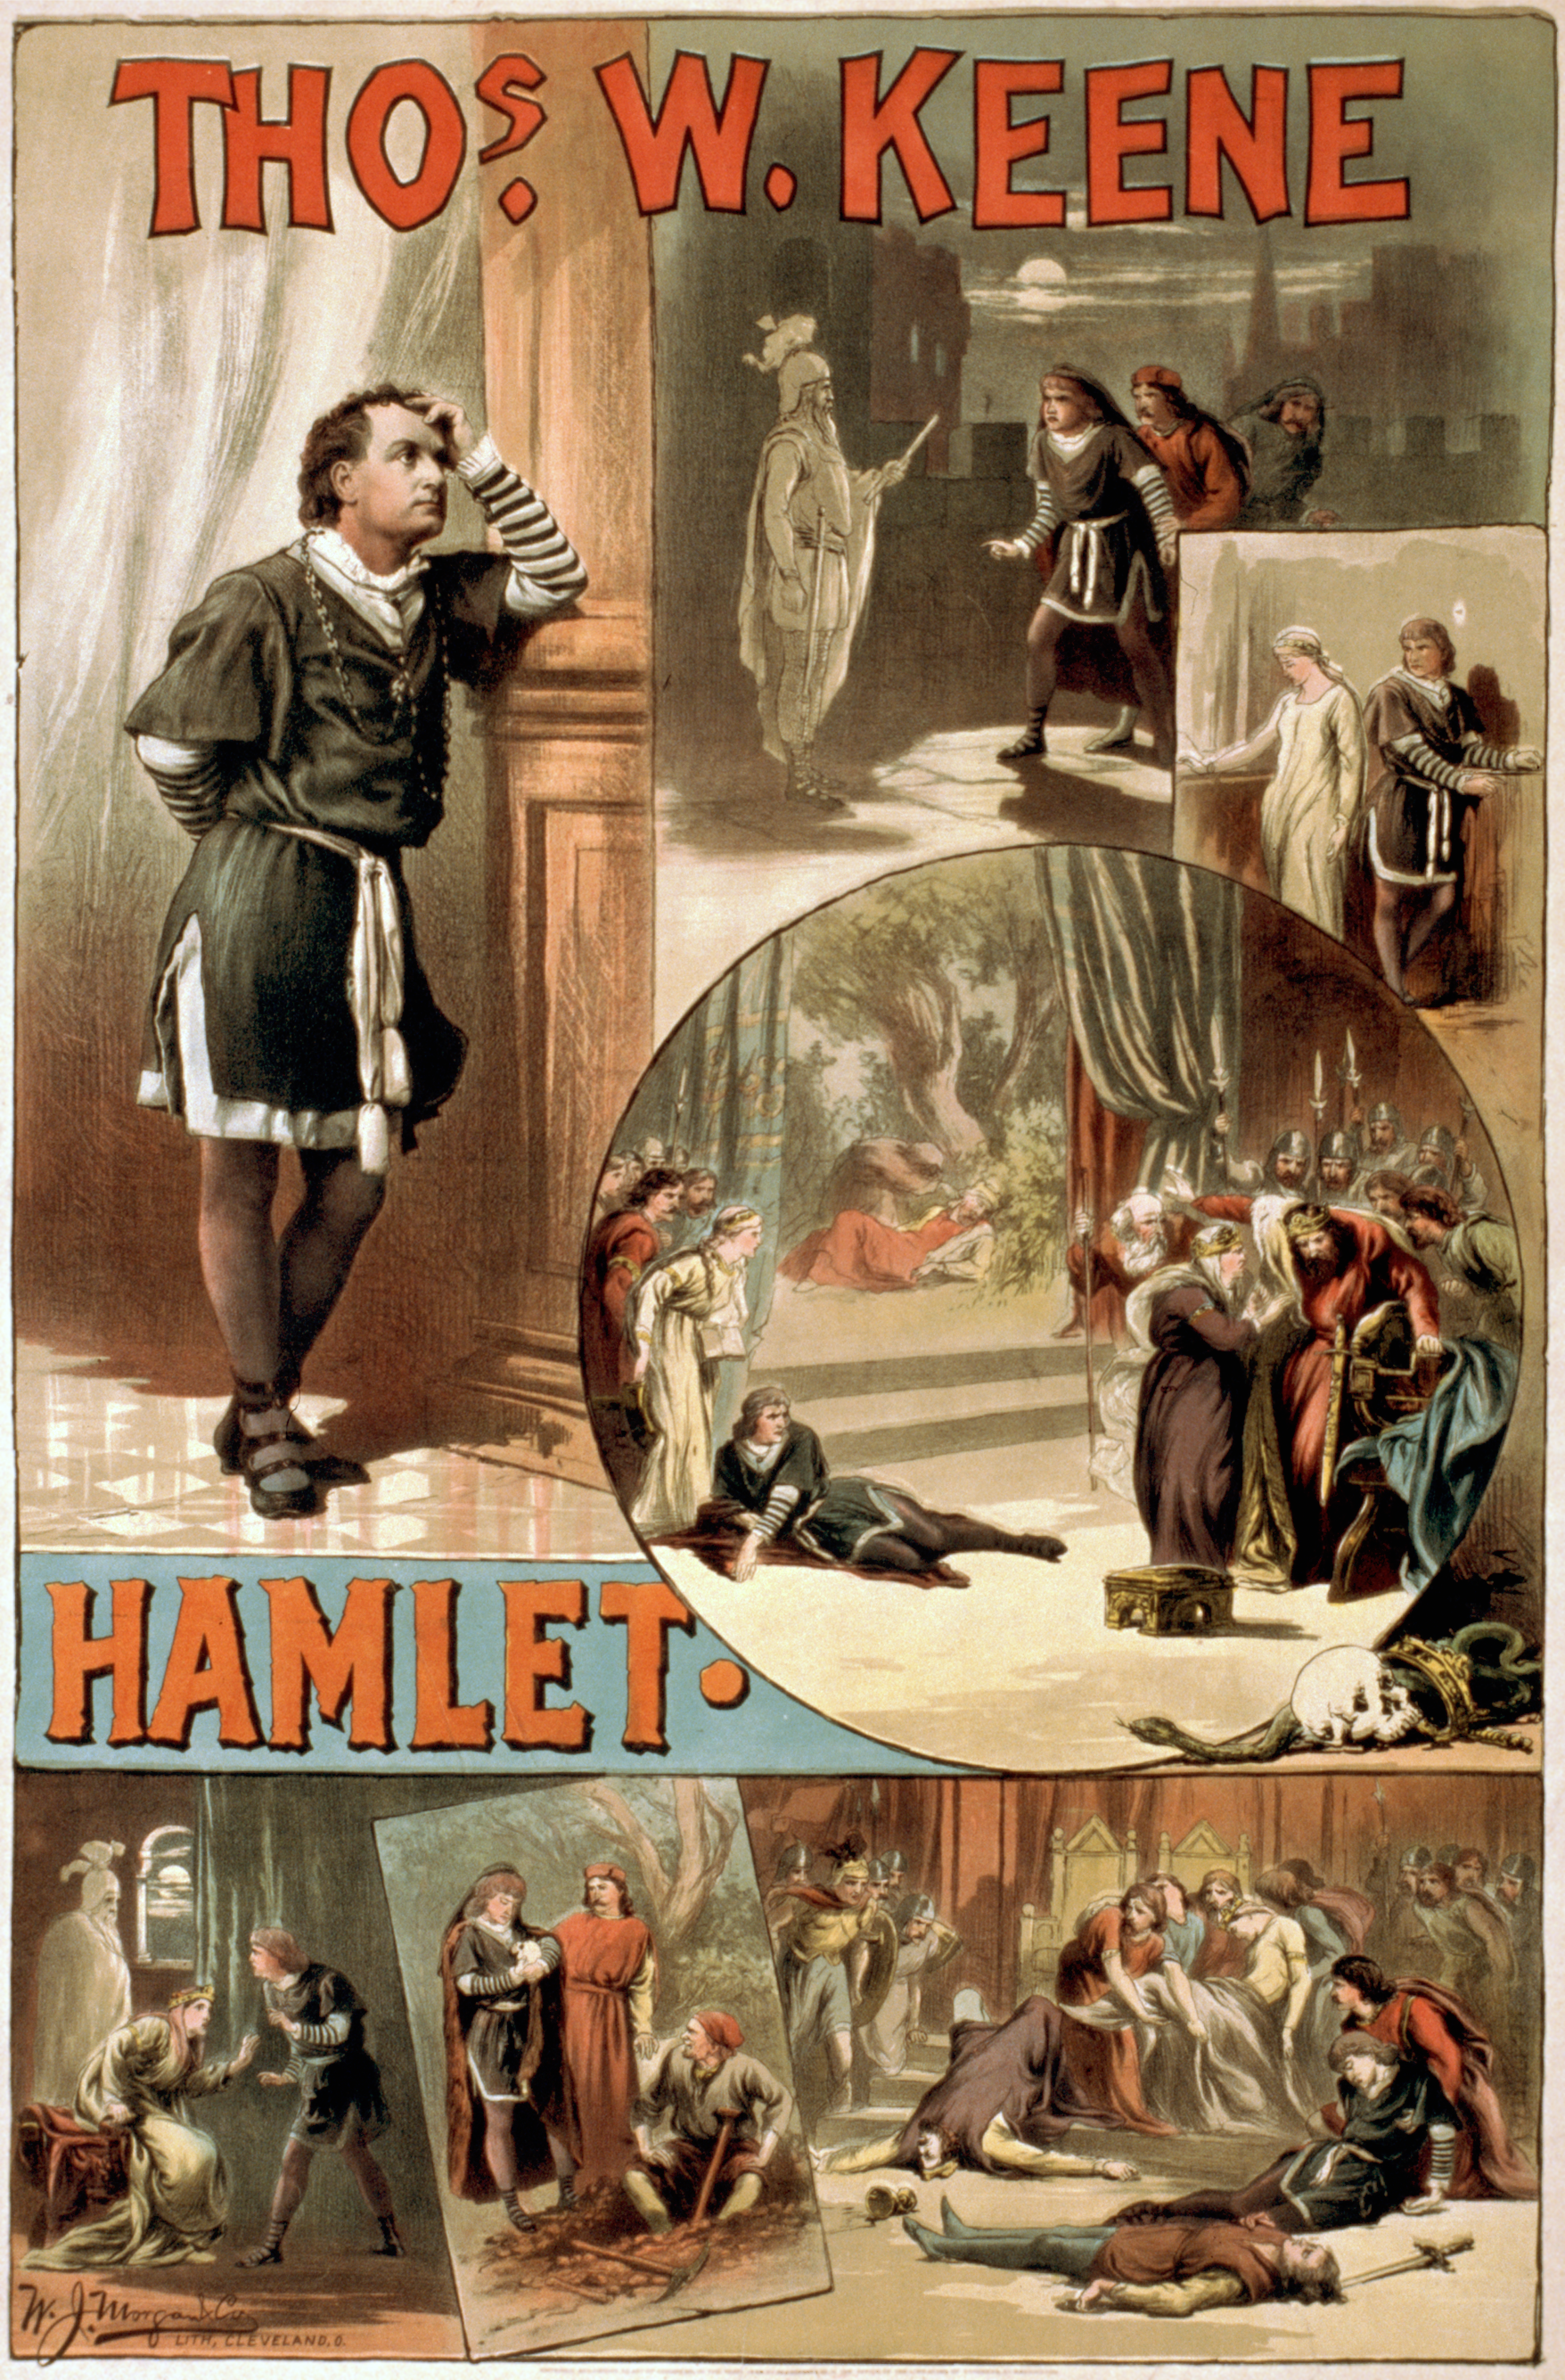 hamlet a story of revenge by william shakespeare A hip, thoroughly contemporary adaptation of william shakespeare's epic story of passion, betrayal, and revenge the president of the denmark corporation is dead  and already his wife is remarried to the man suspected of his murder.